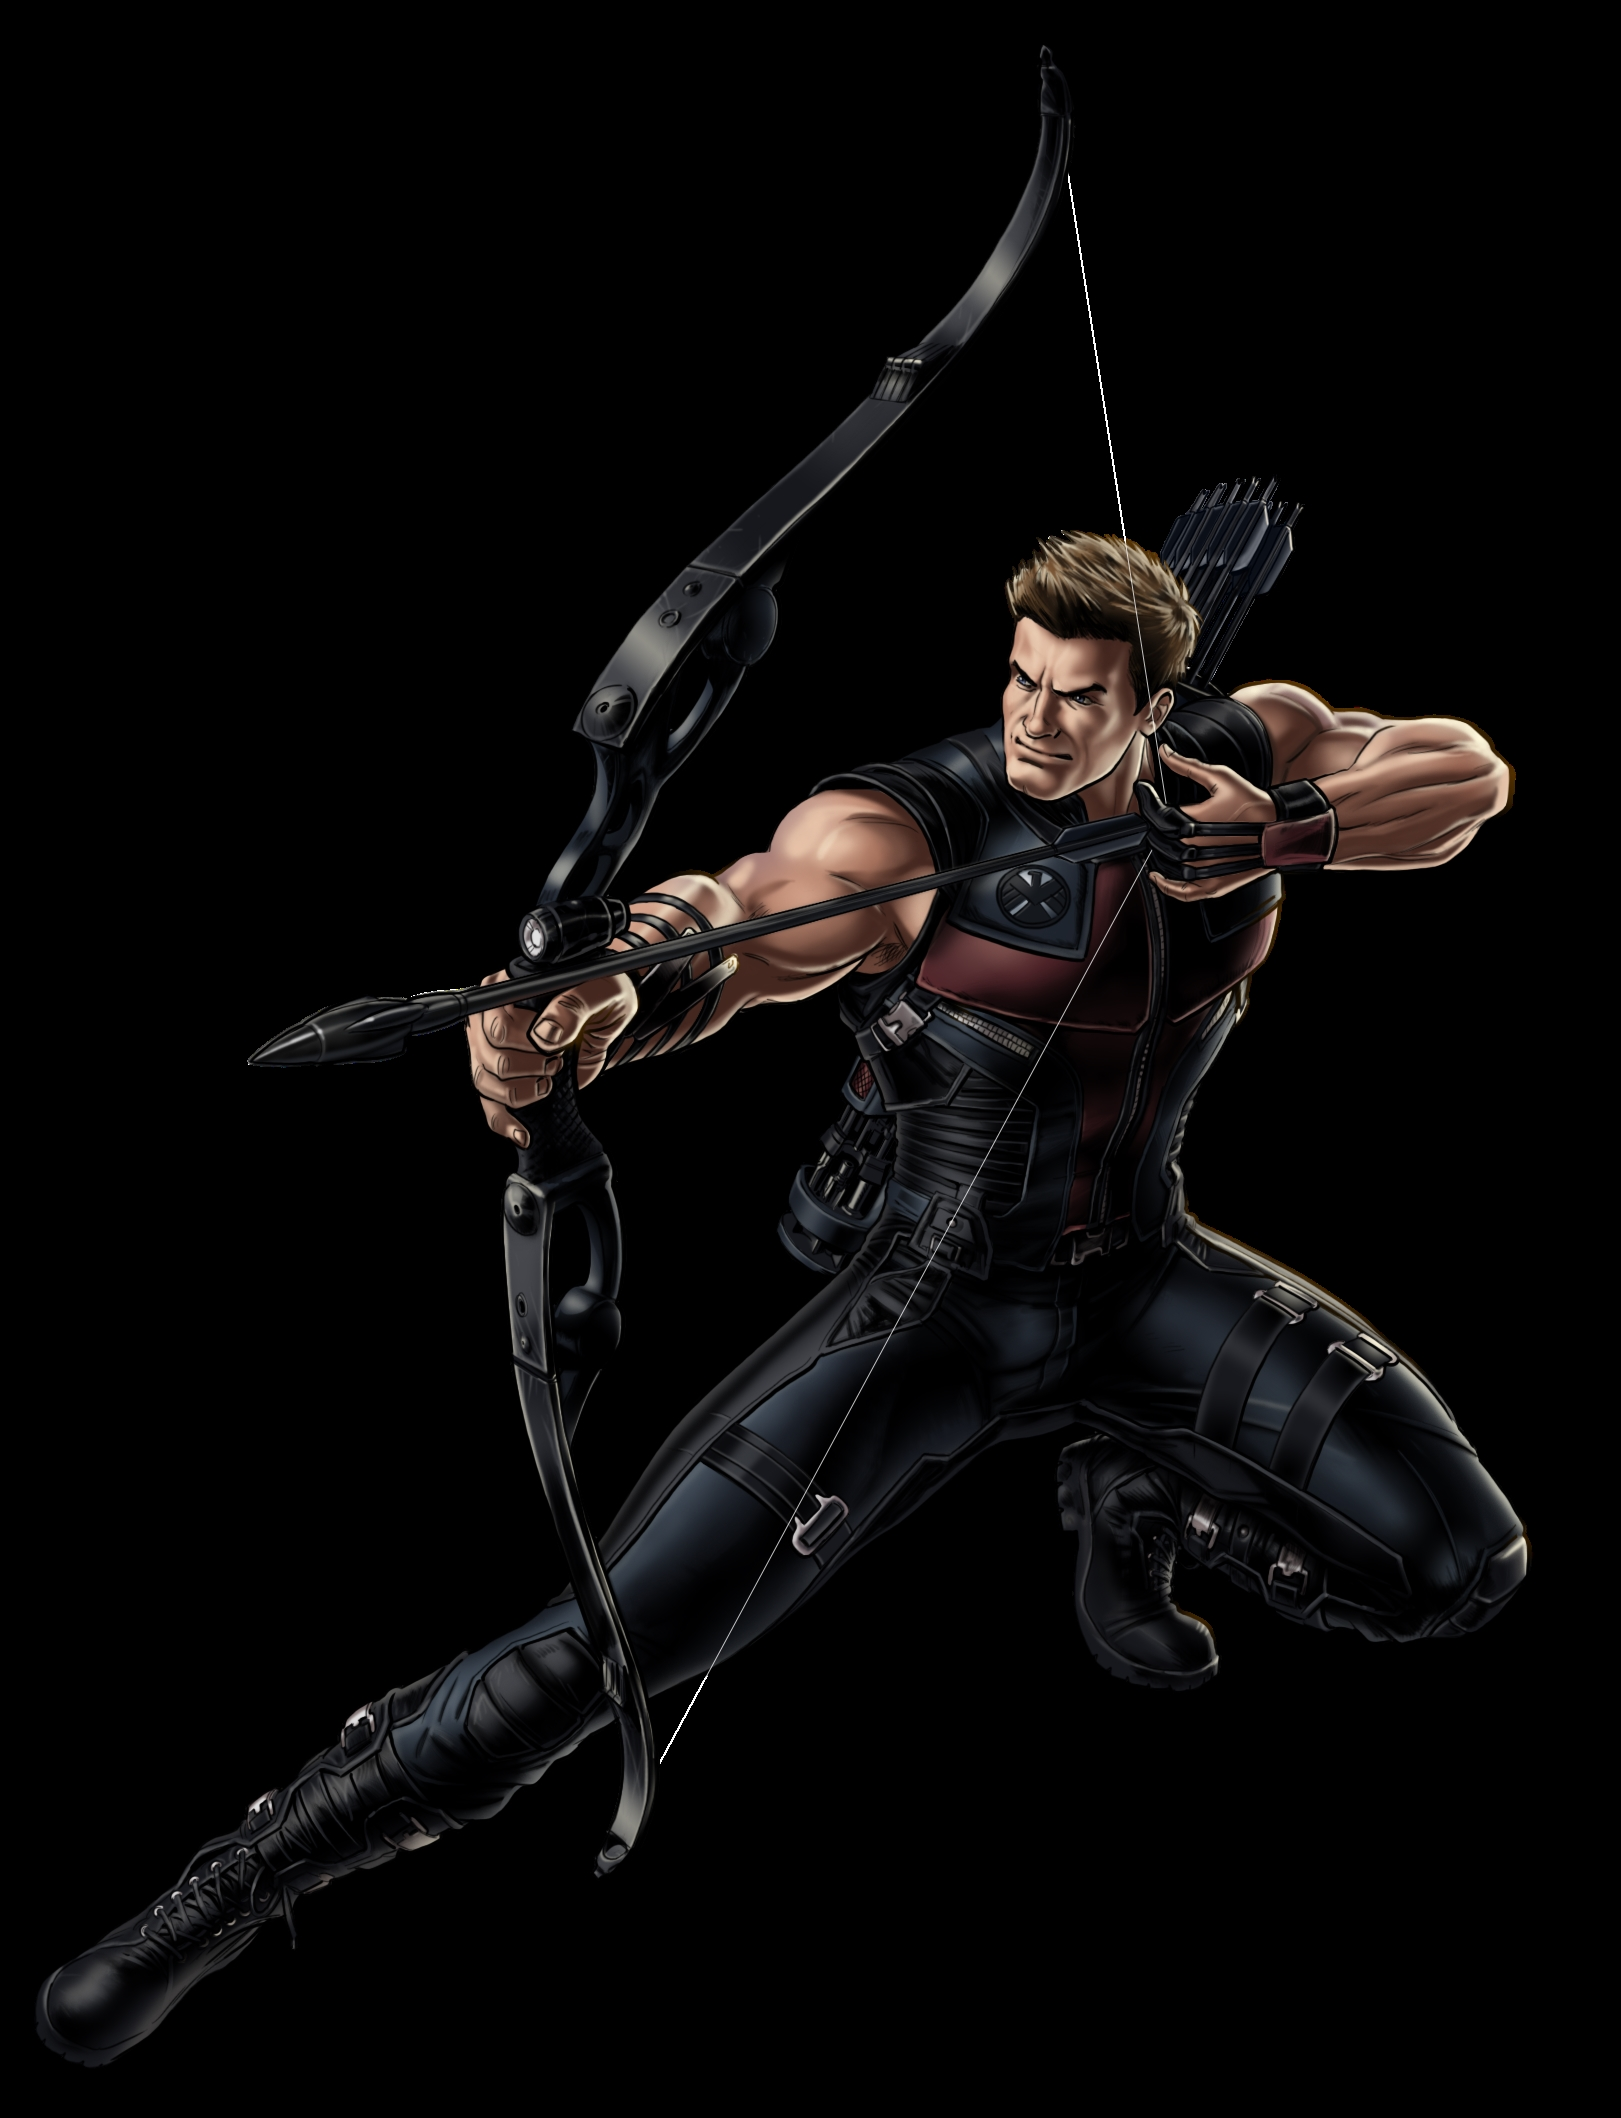 hawkeye marvel avenger portrait art